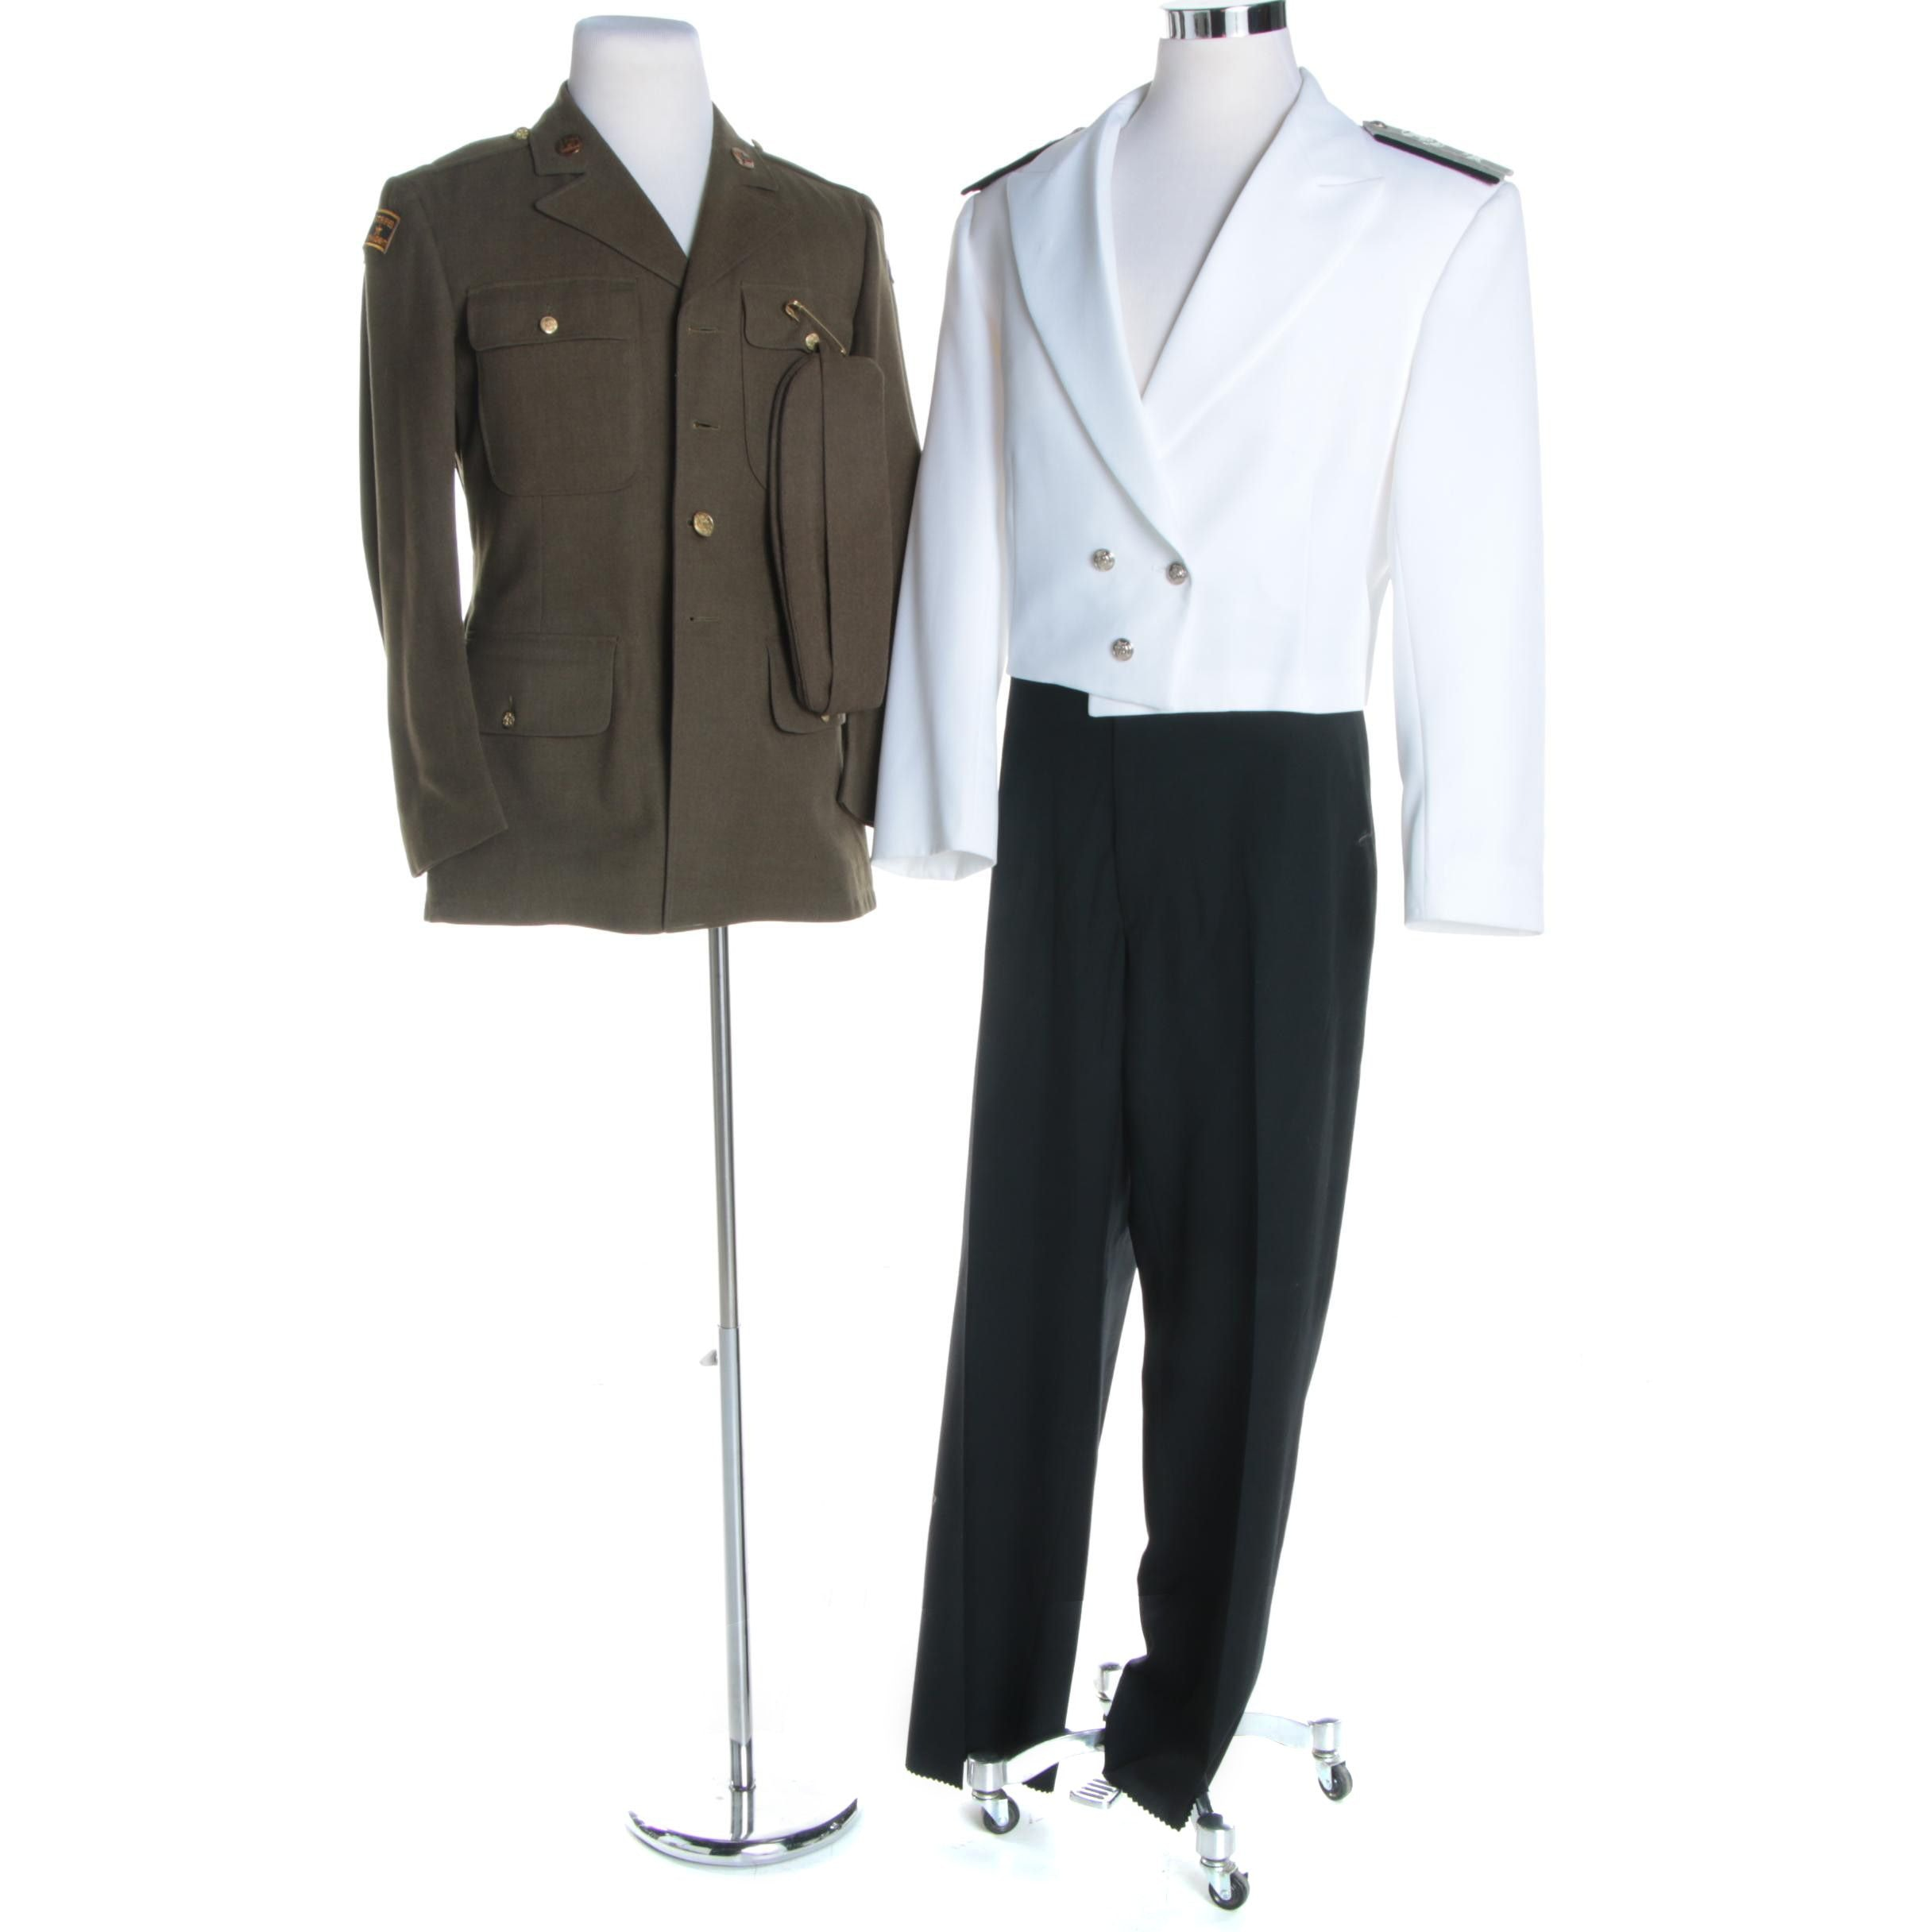 Andy Rooney Replica Stars & Stripes Jacket  and Other Suit